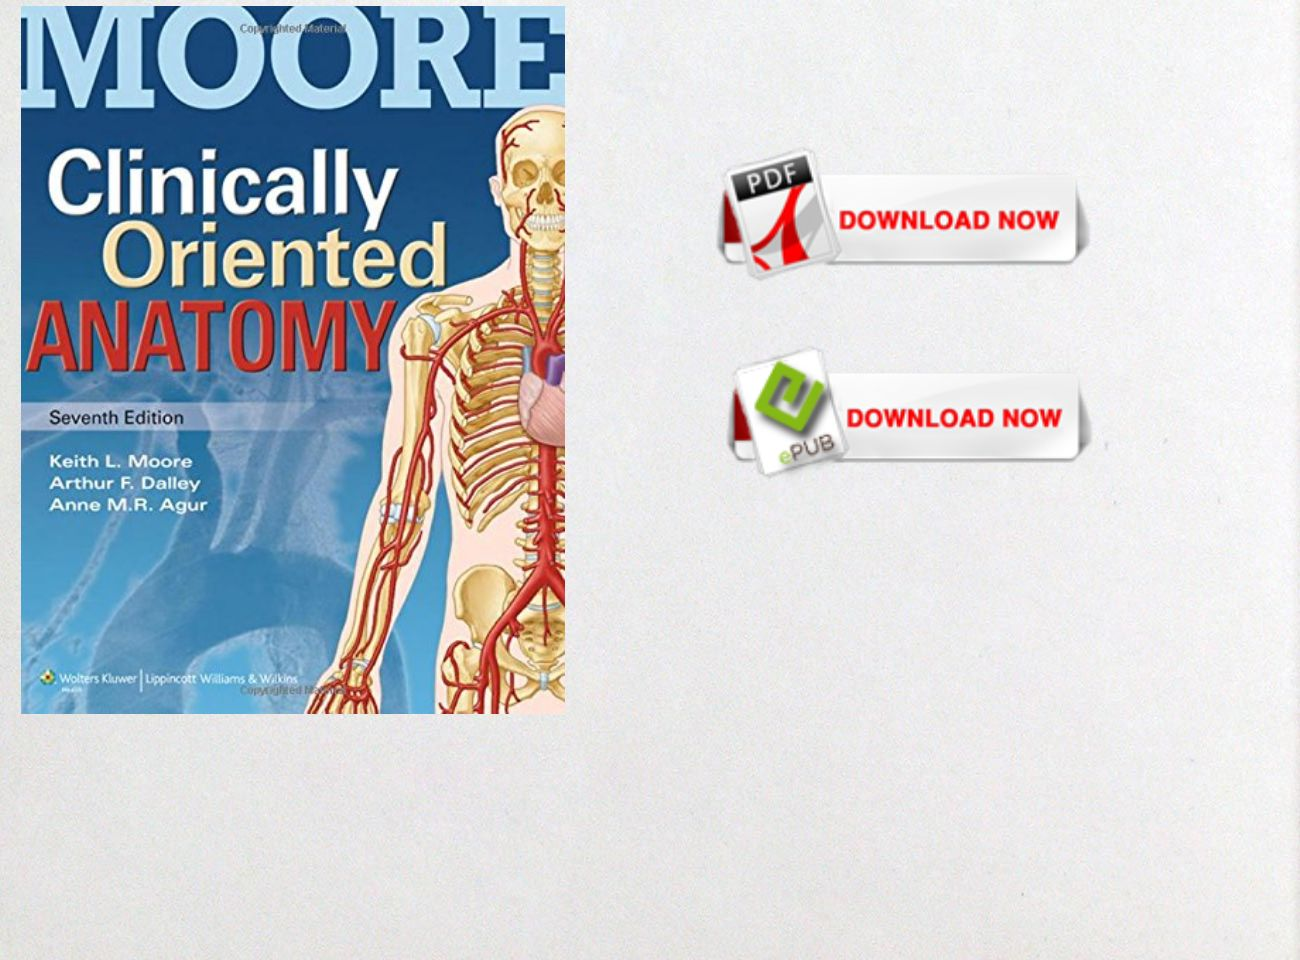 Free Download] PDF Ebook Clinically Oriented Anatomy: text, images ...